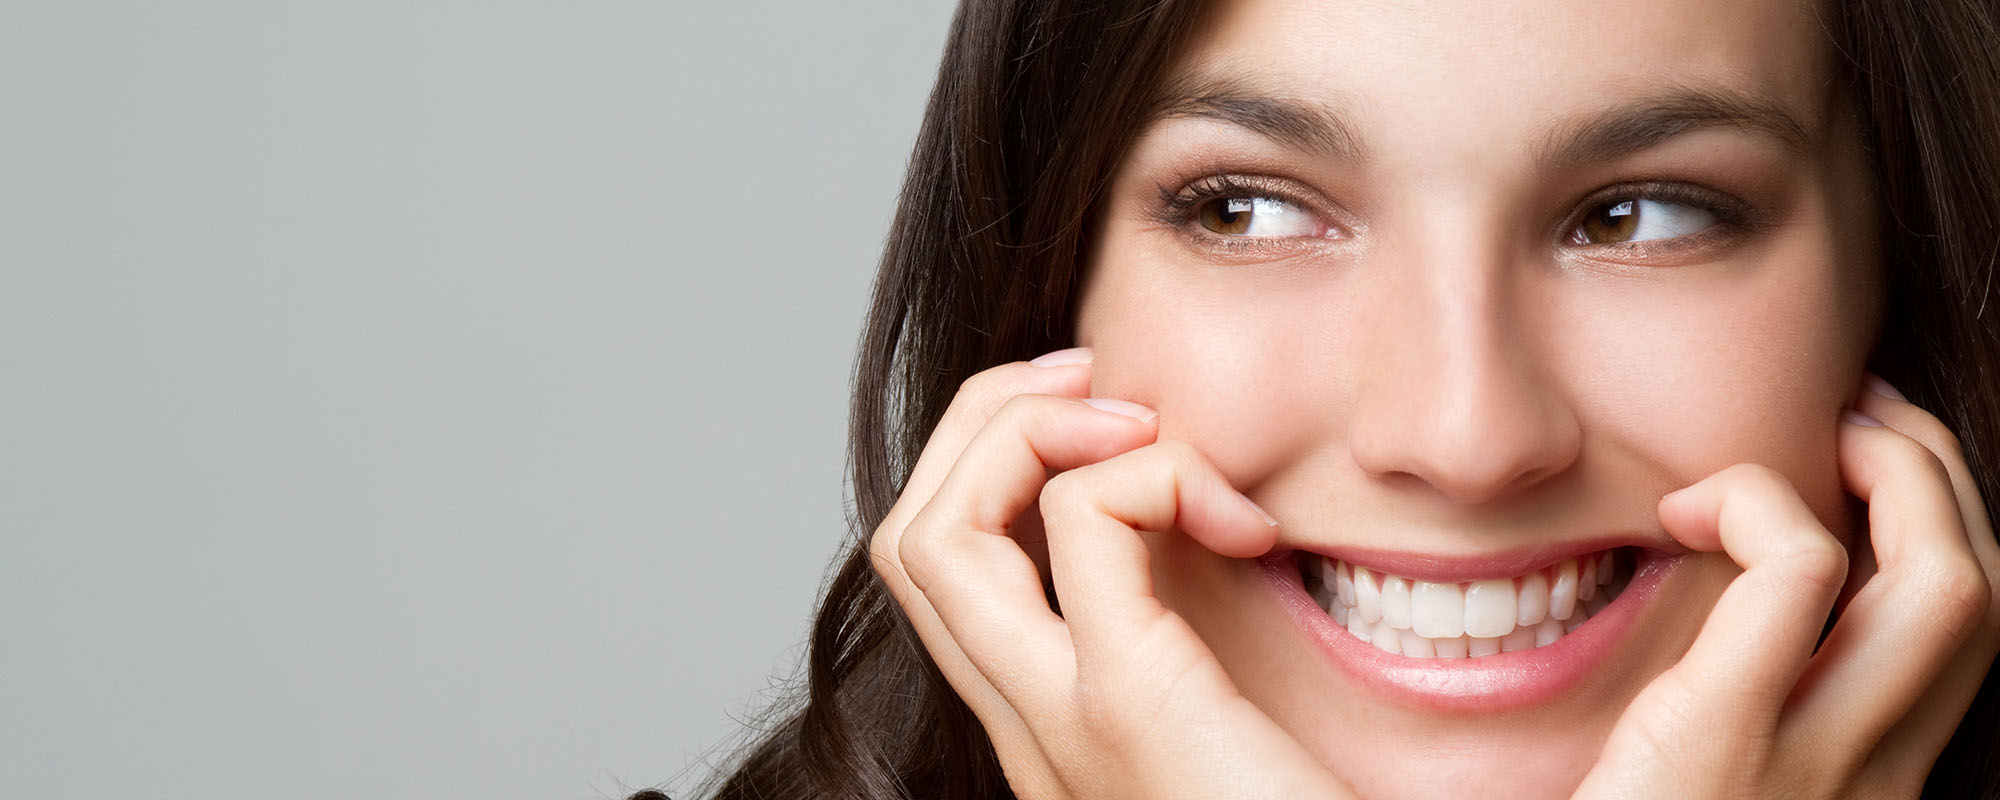 who is the best dentist in orlando for gummy smile?